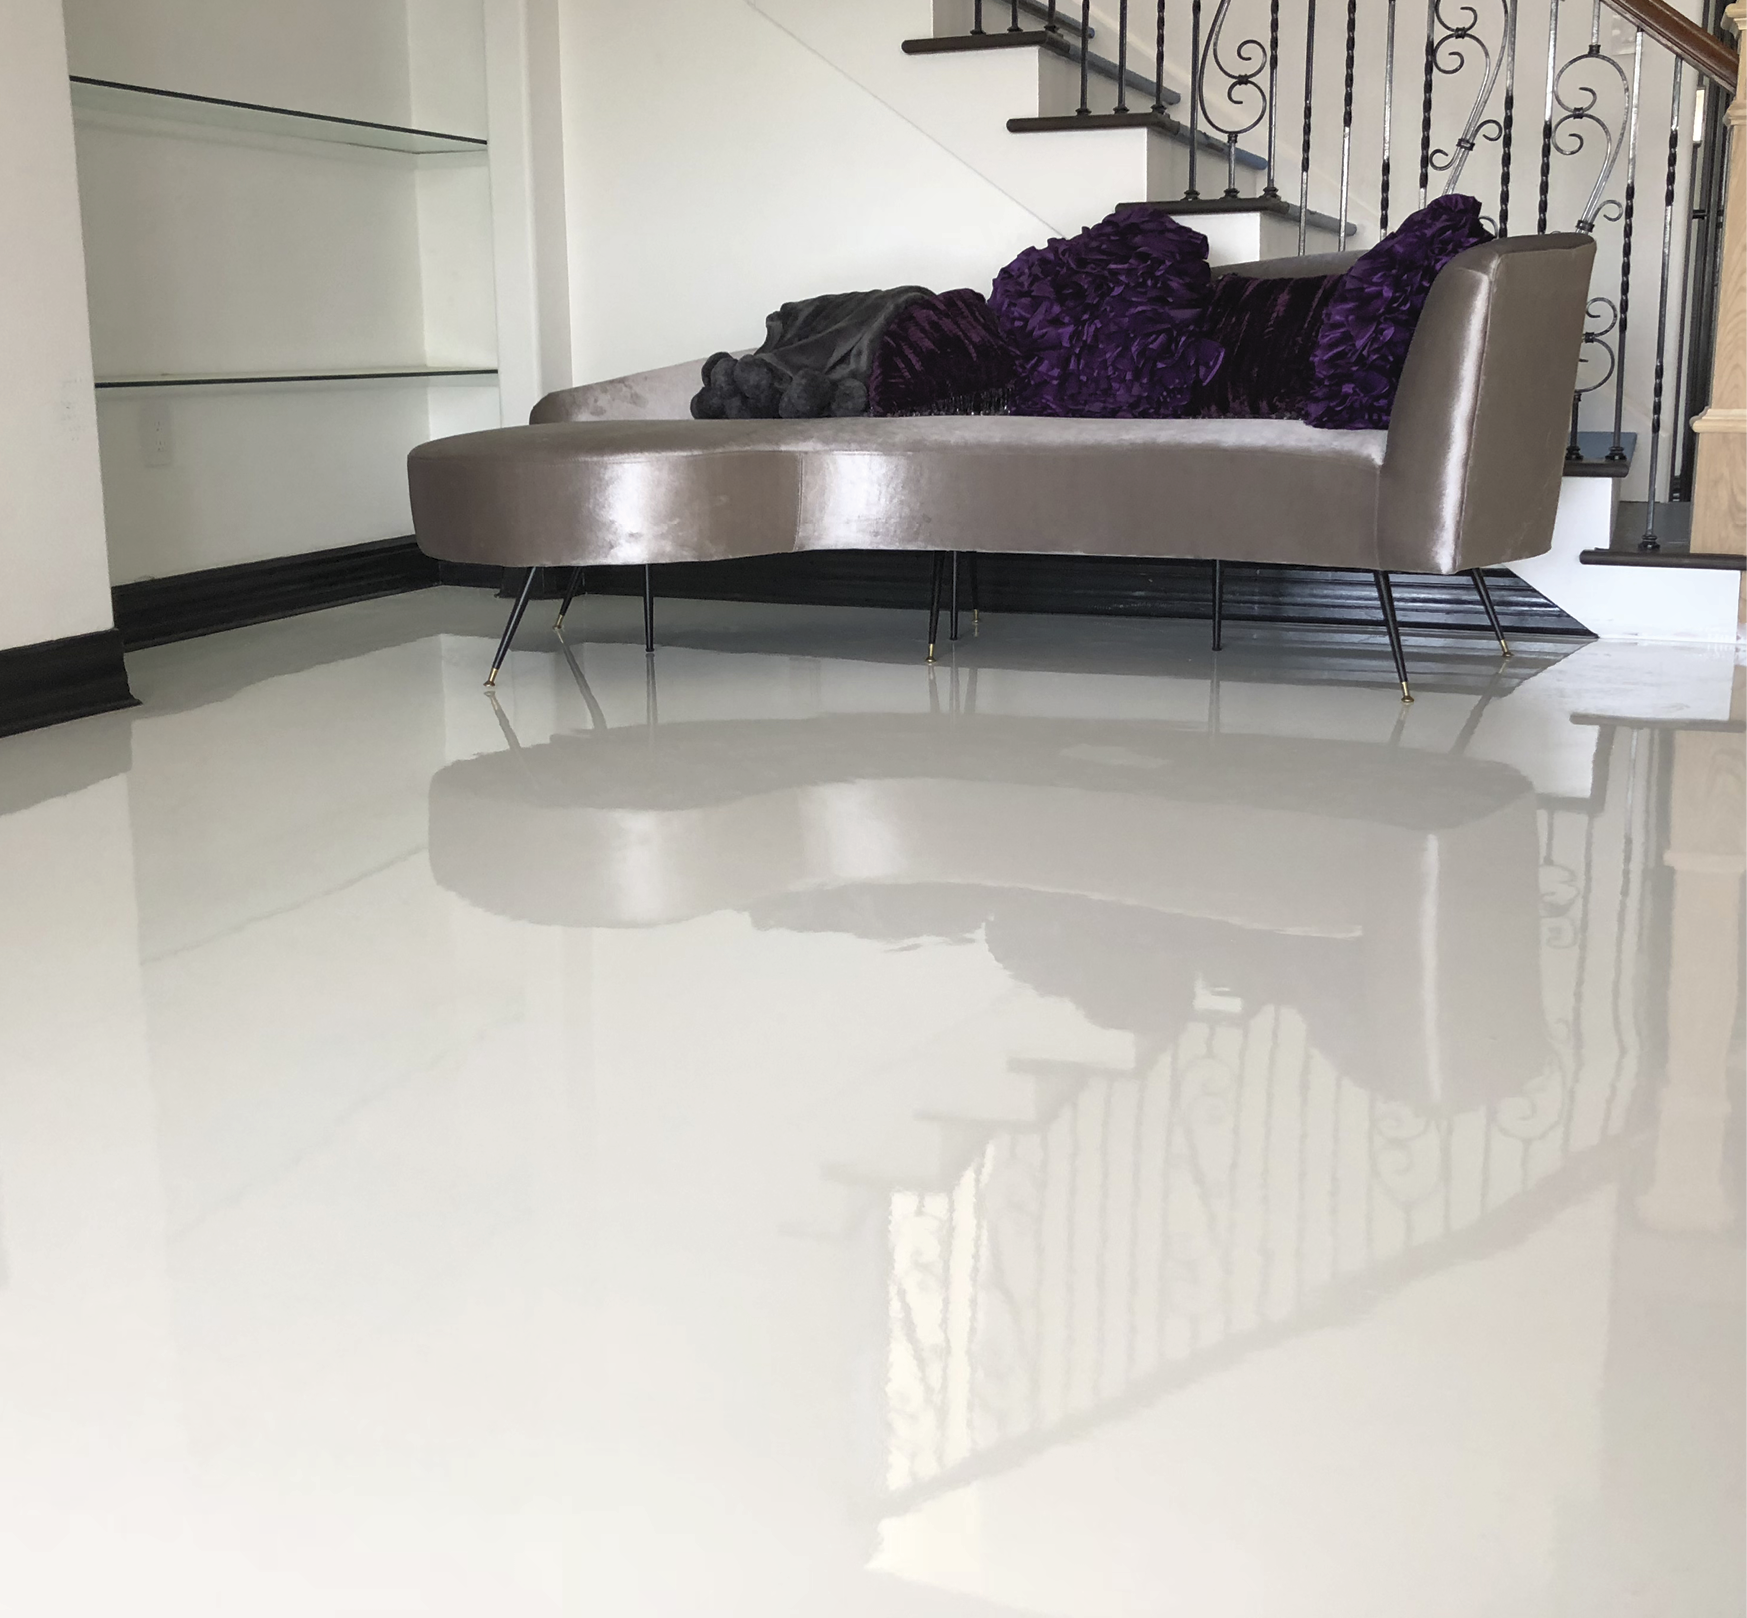 A clean white epoxy floor that is flanked with a white chaise lounge.